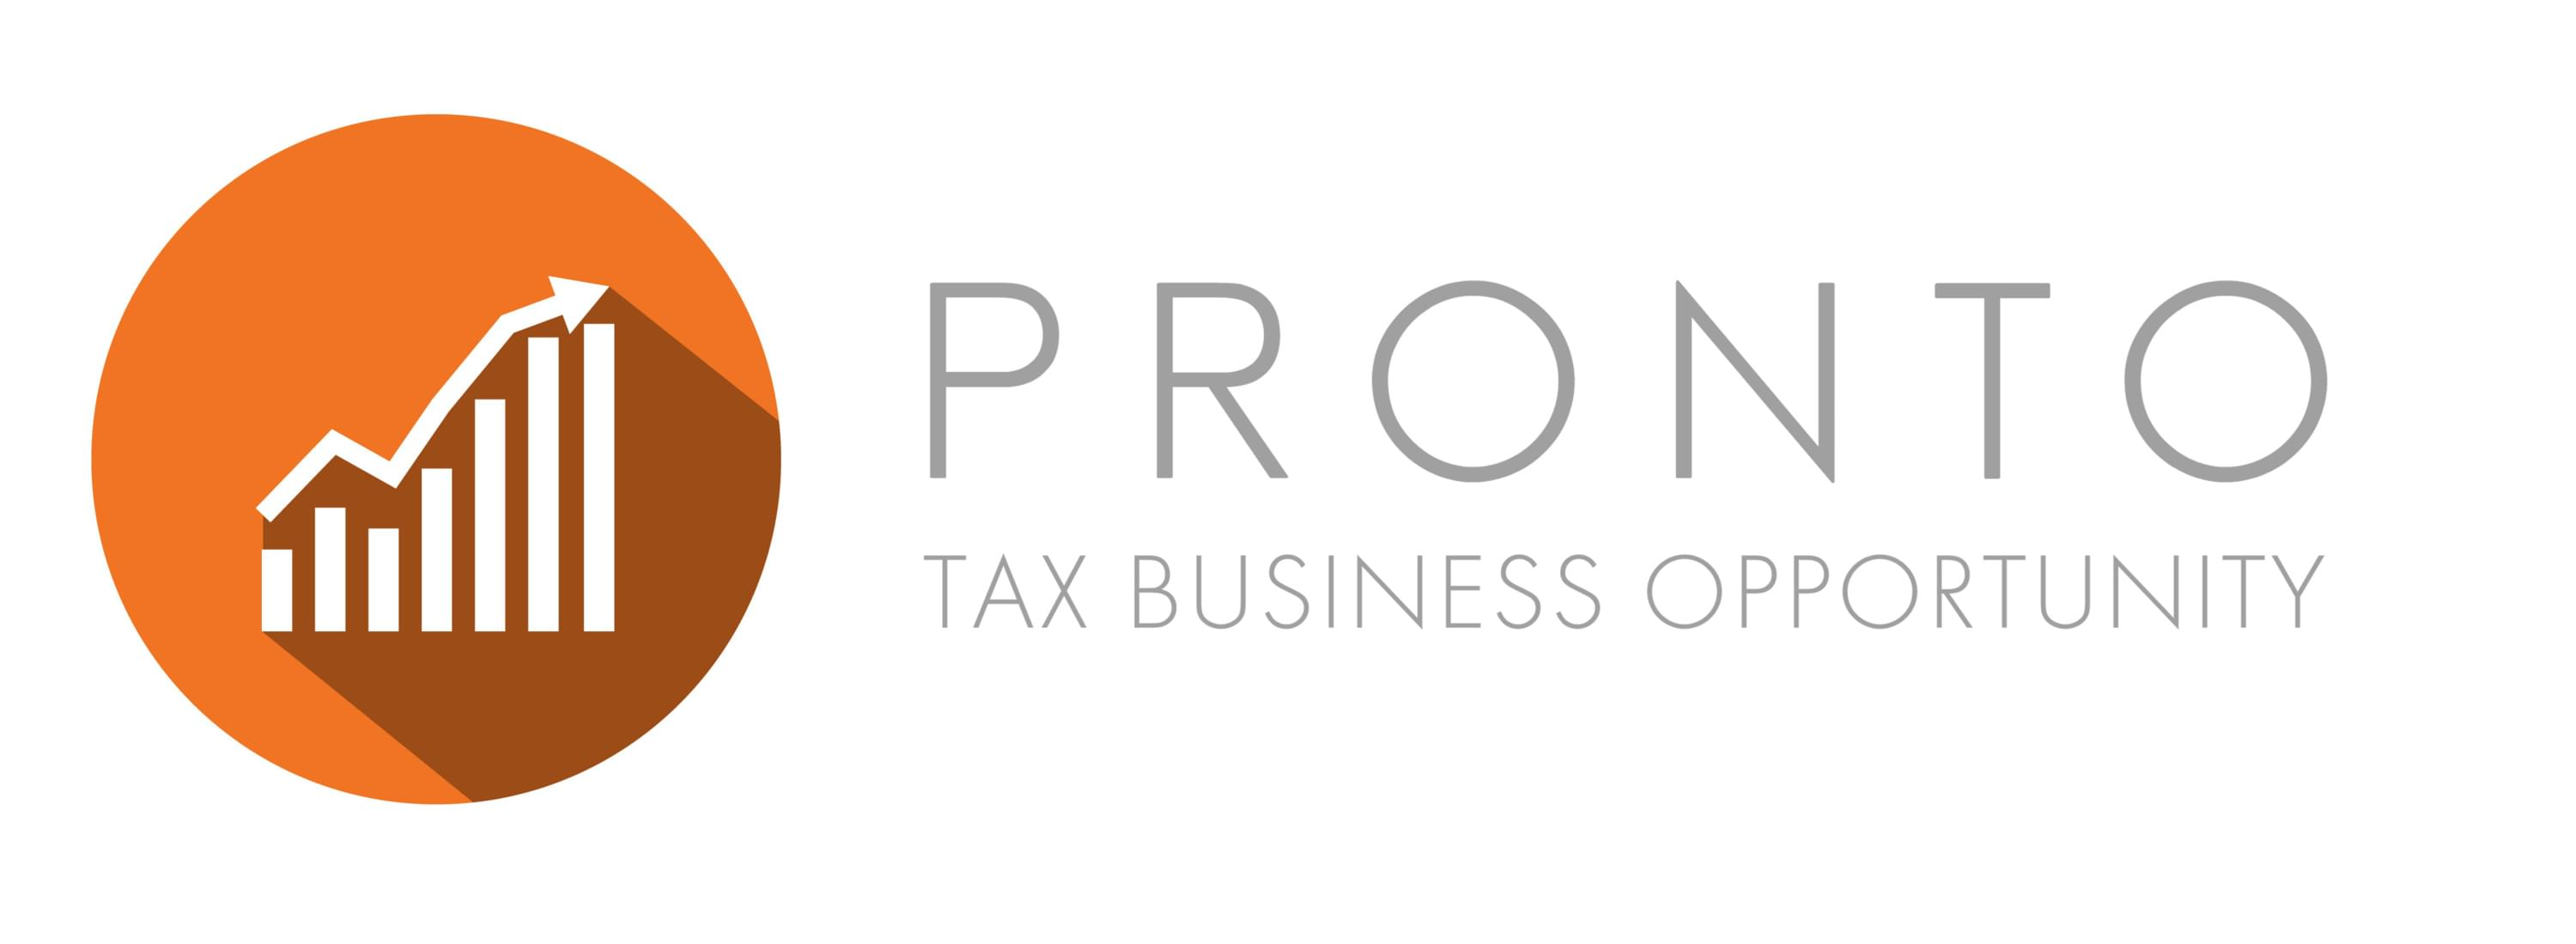 Pronto Tax Business Opportunity